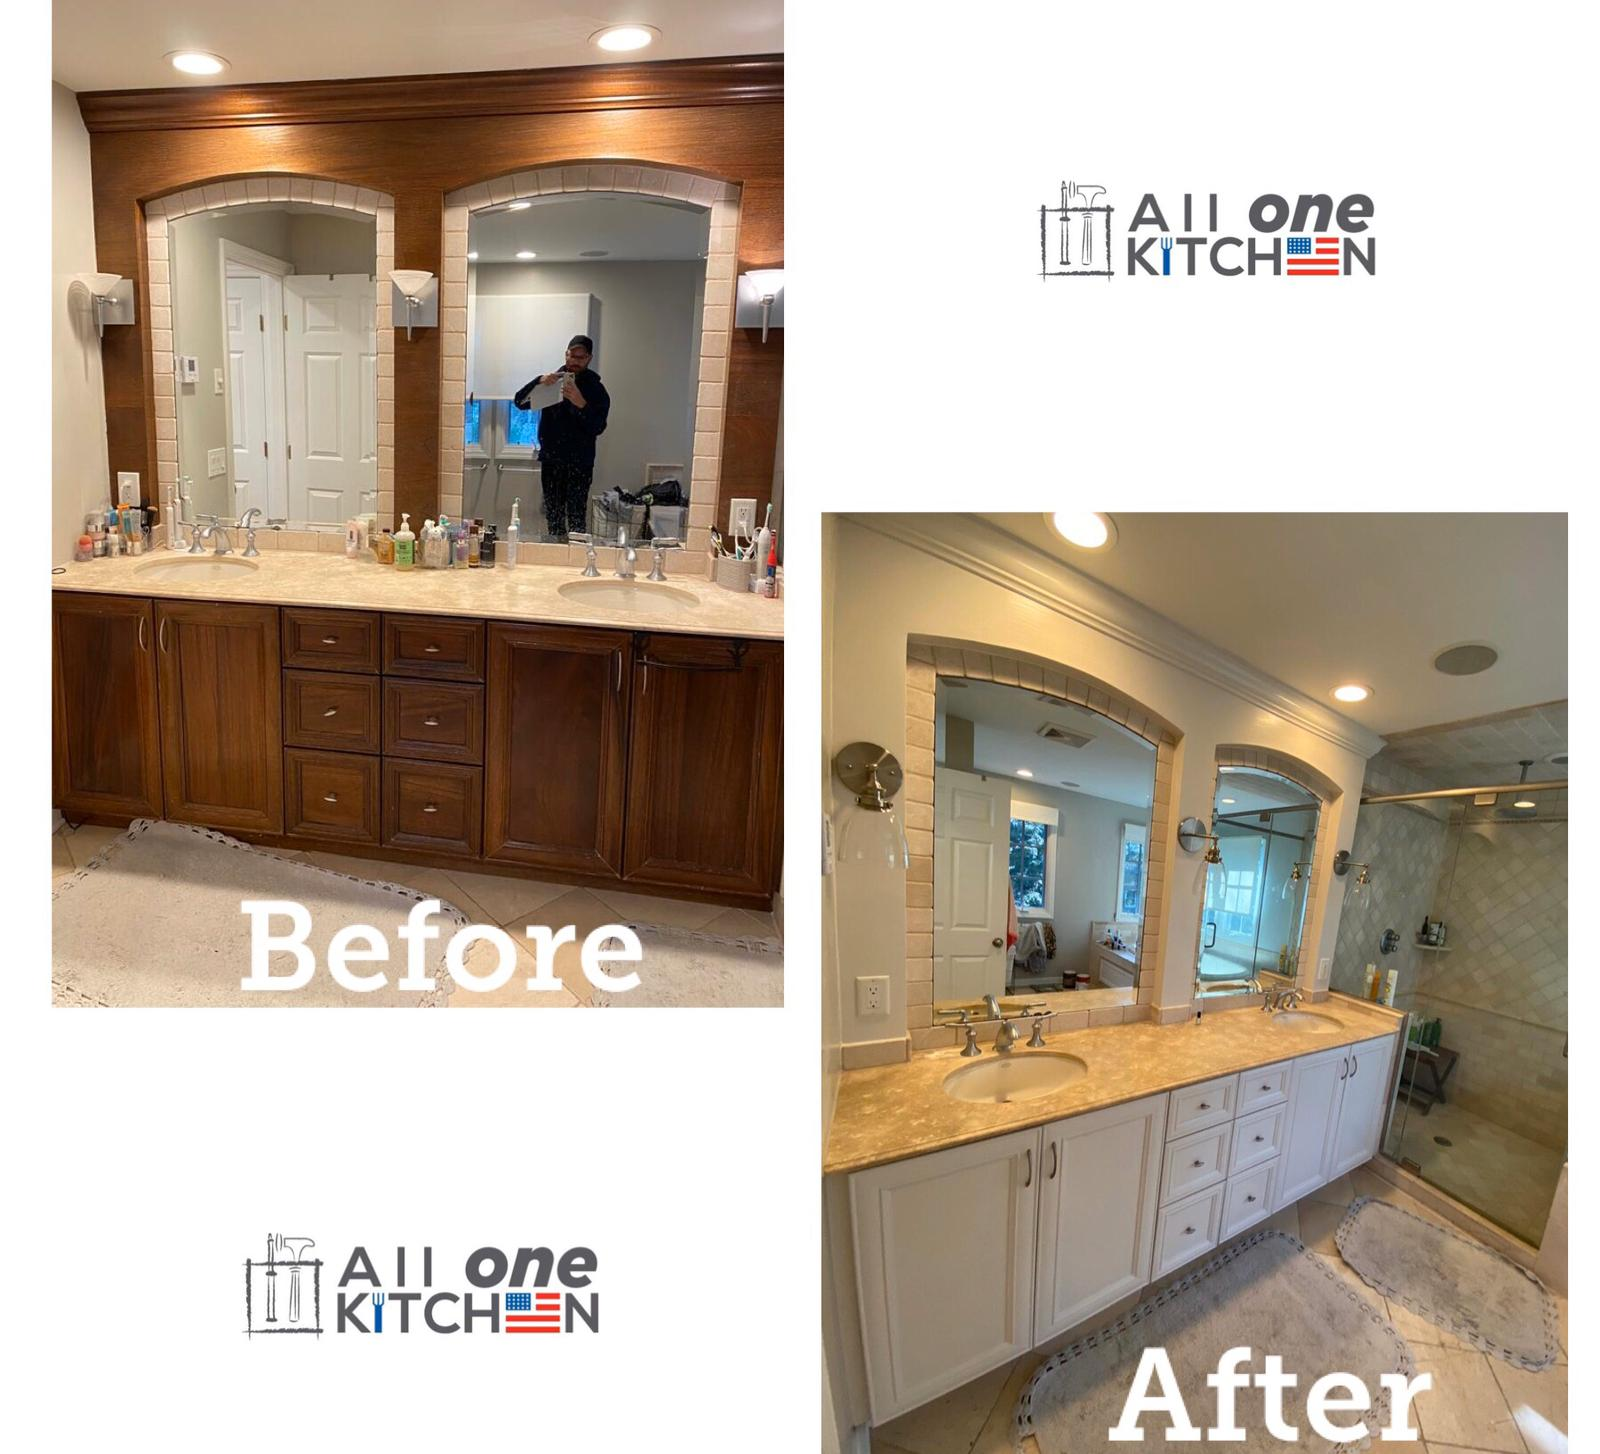 Kitchen Repairs Services Nj Nyc Kitchen Cabinet Repair